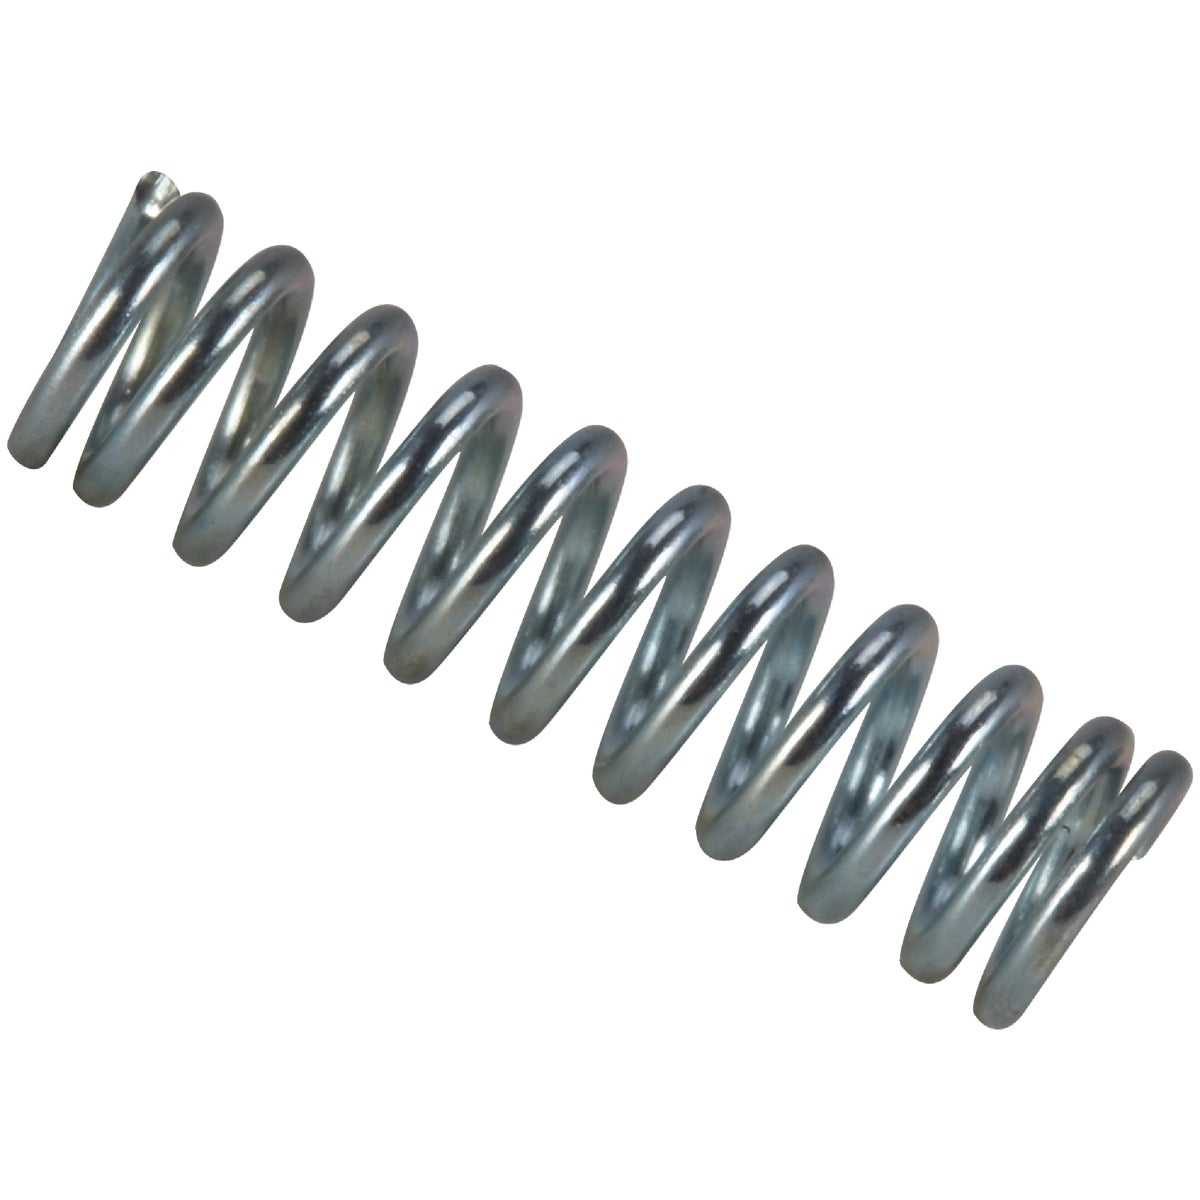 COMPRESSION SPRING - C-550 by Century Spring Corp